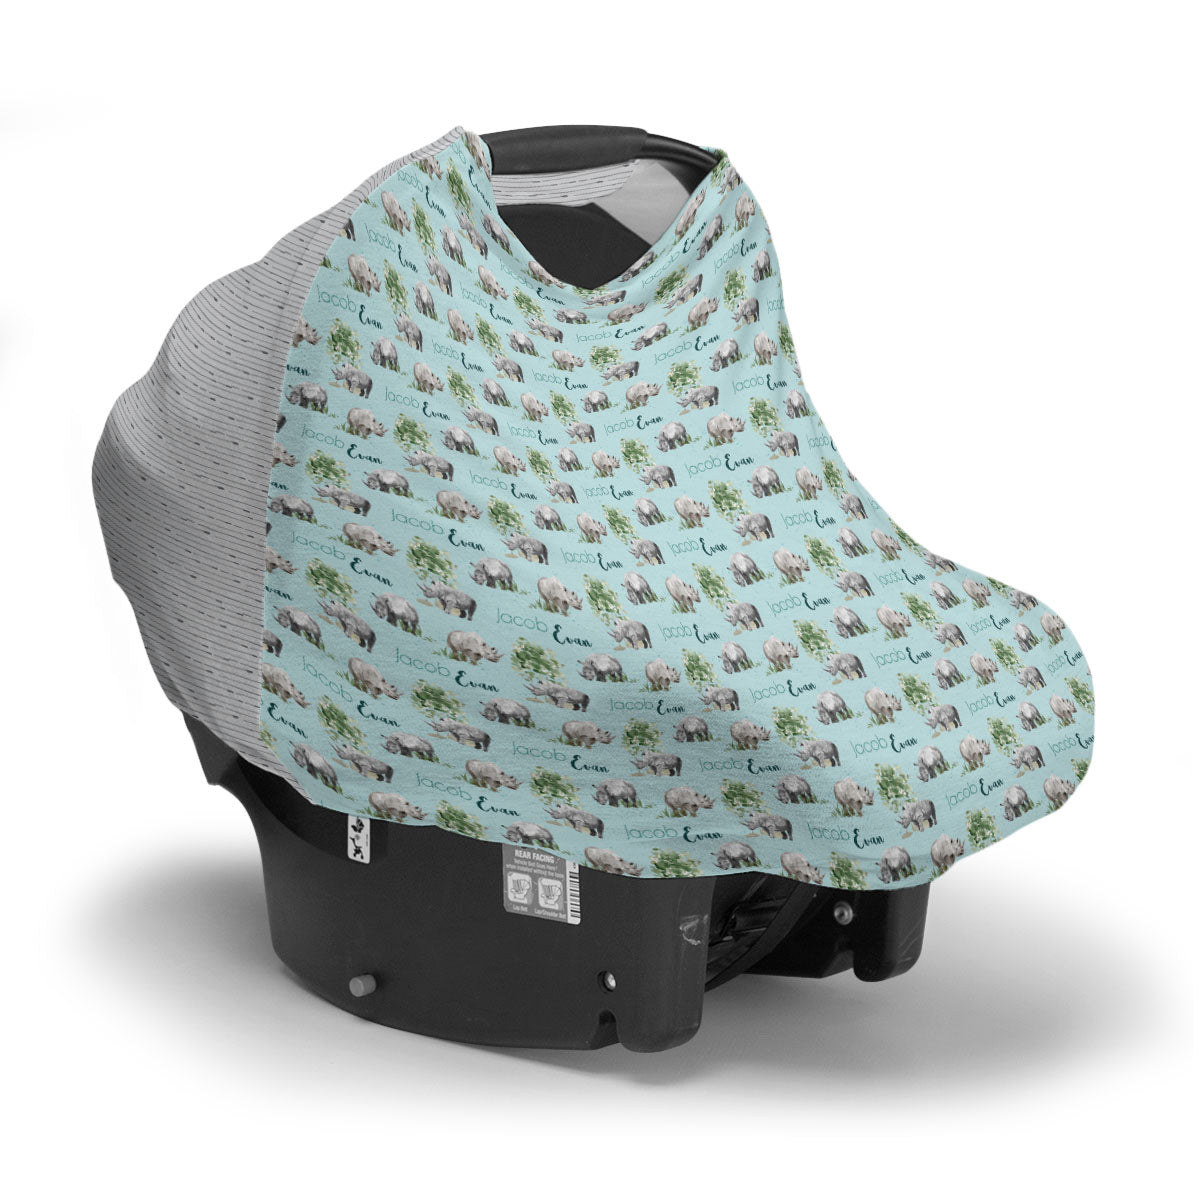 Jacob's Mighty Rhino | Car Seat Cover (Multi-Use)